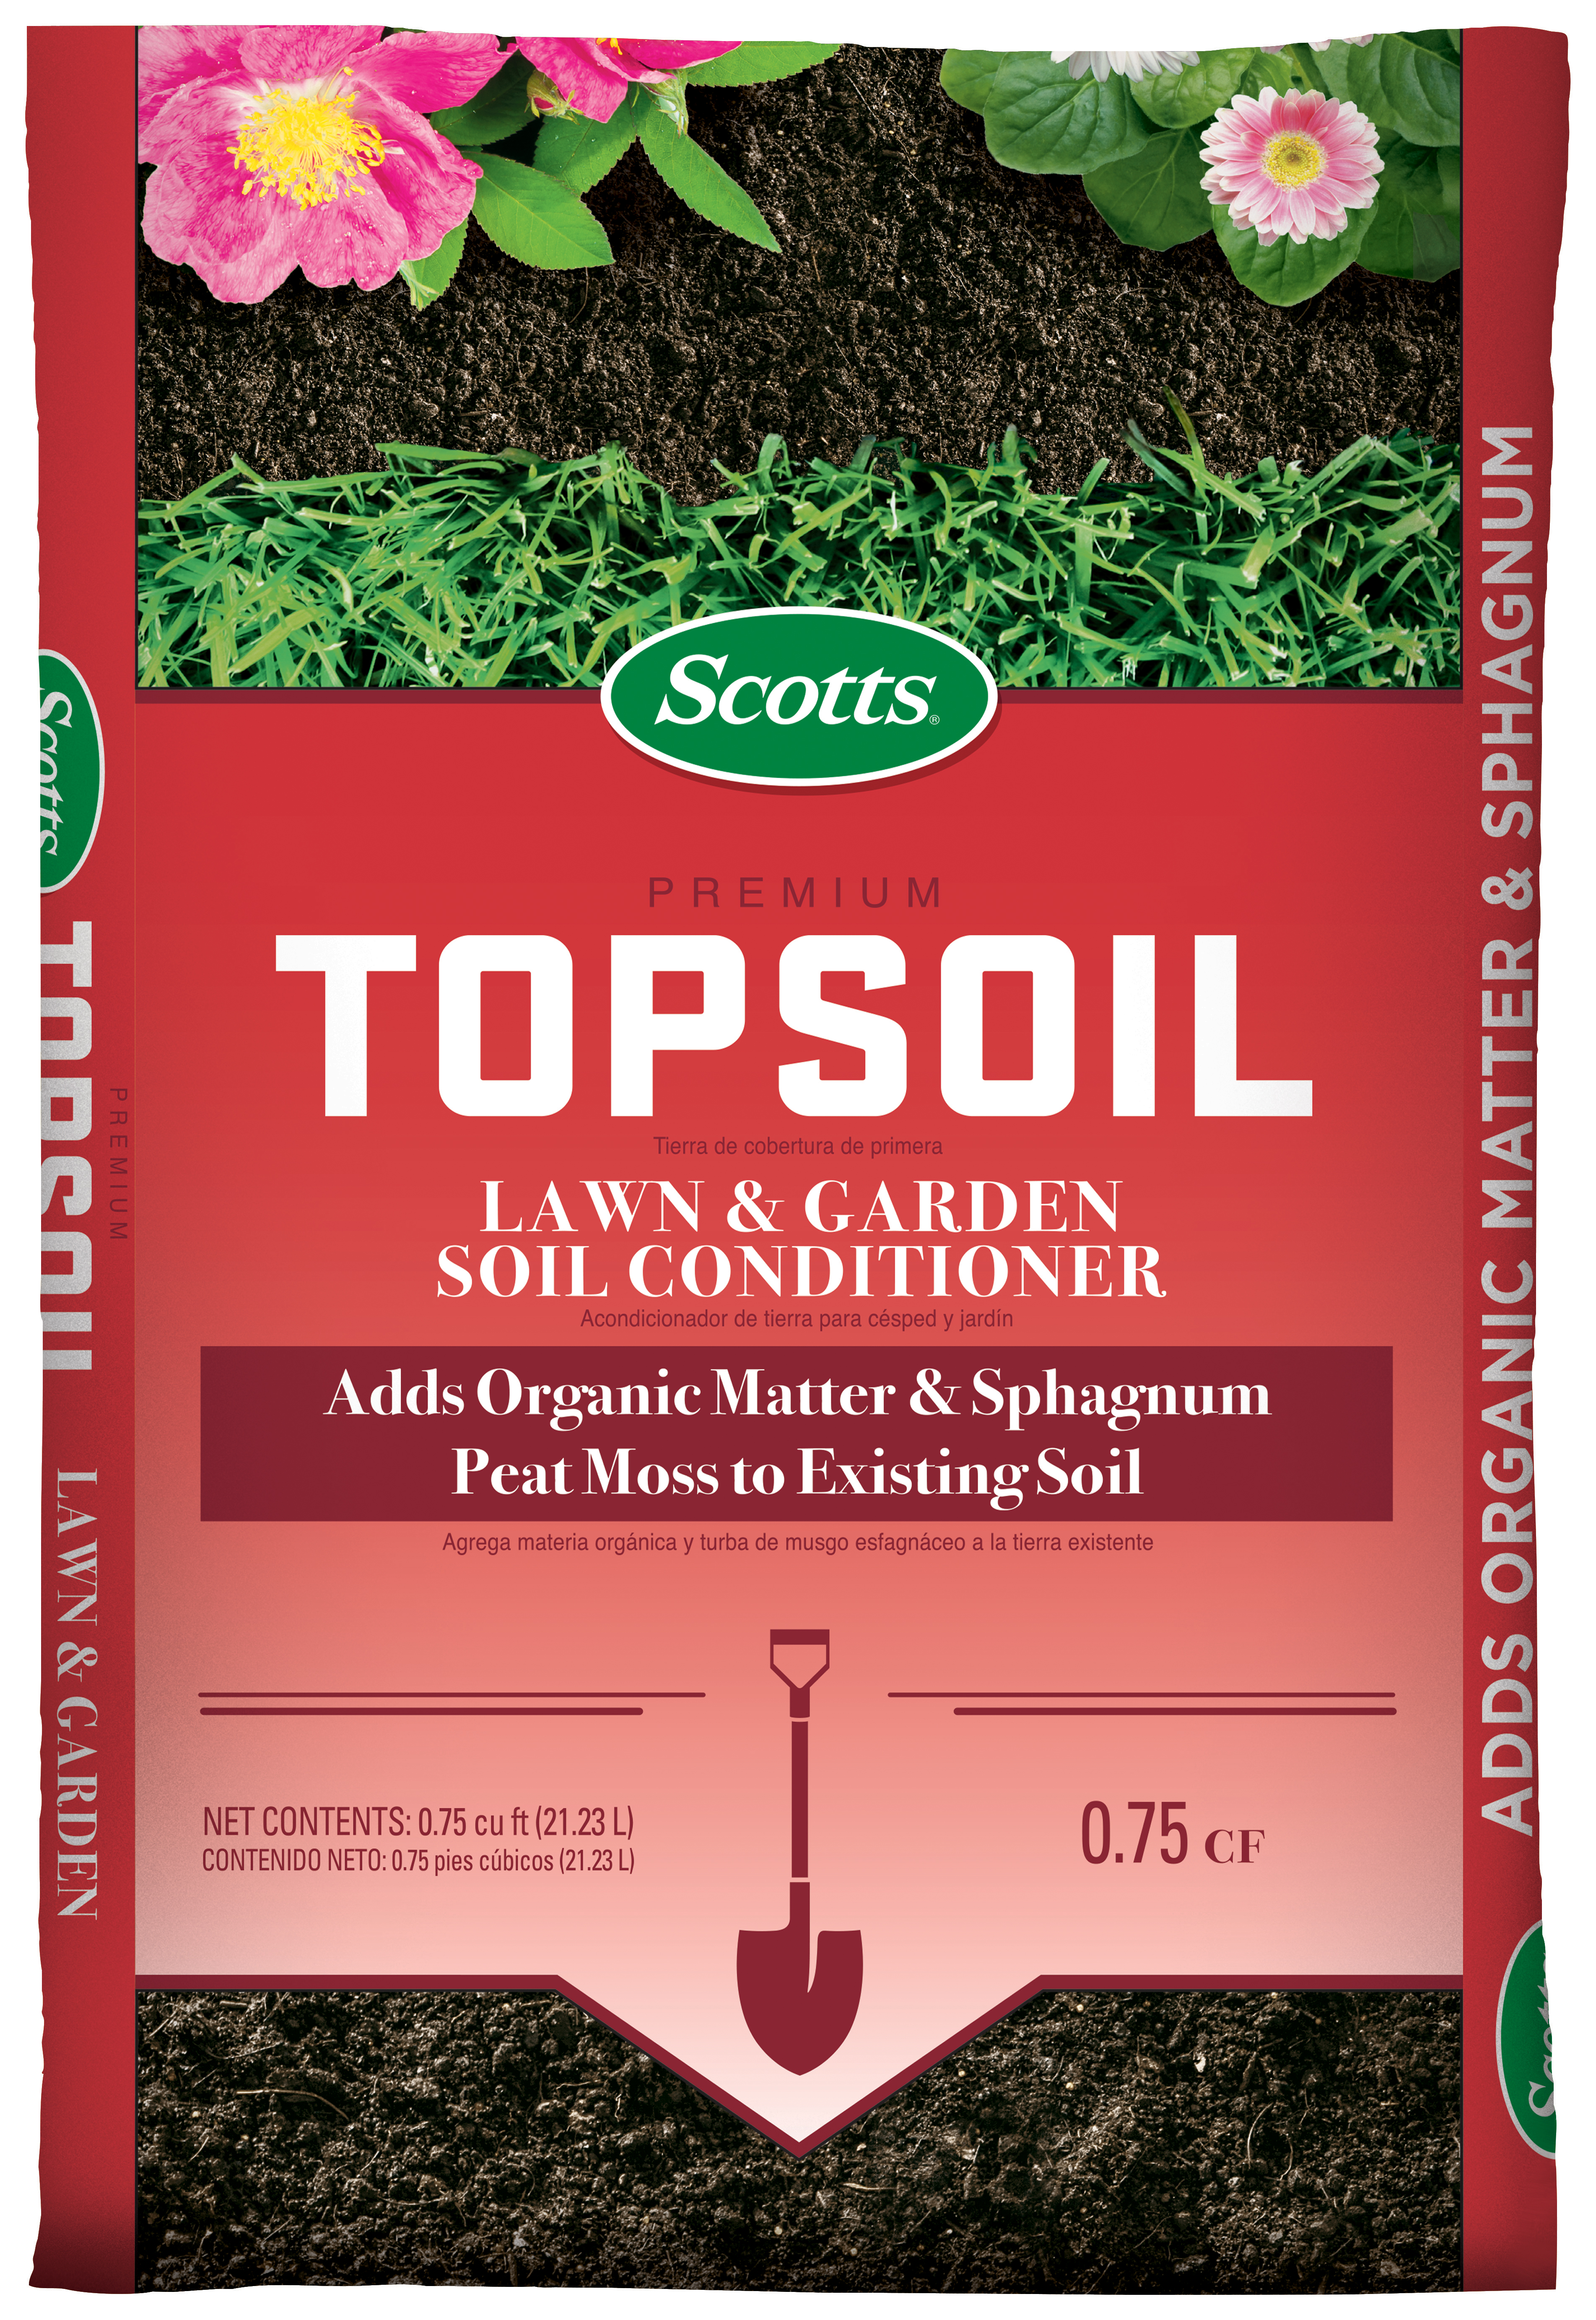 Scotts Premium Topsoil Scotts